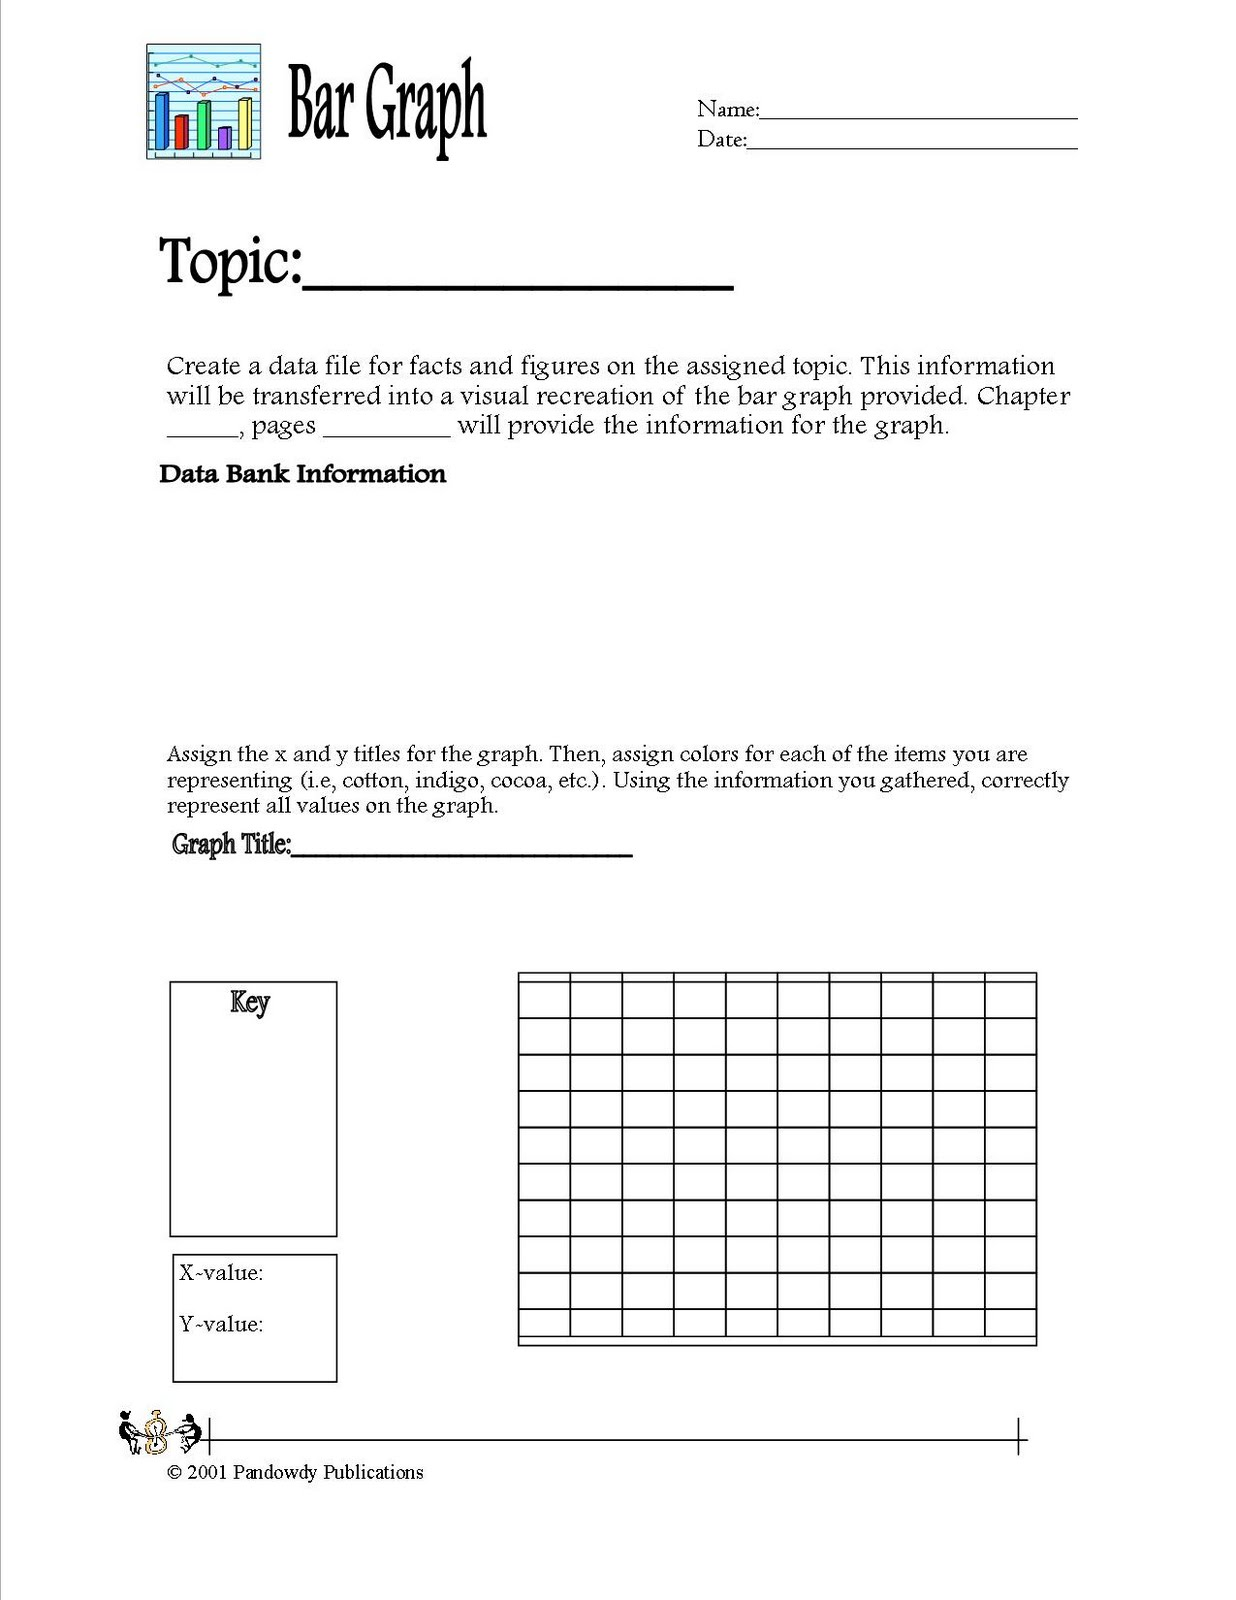 Pandowdy Publications Bar Graph Worksheet